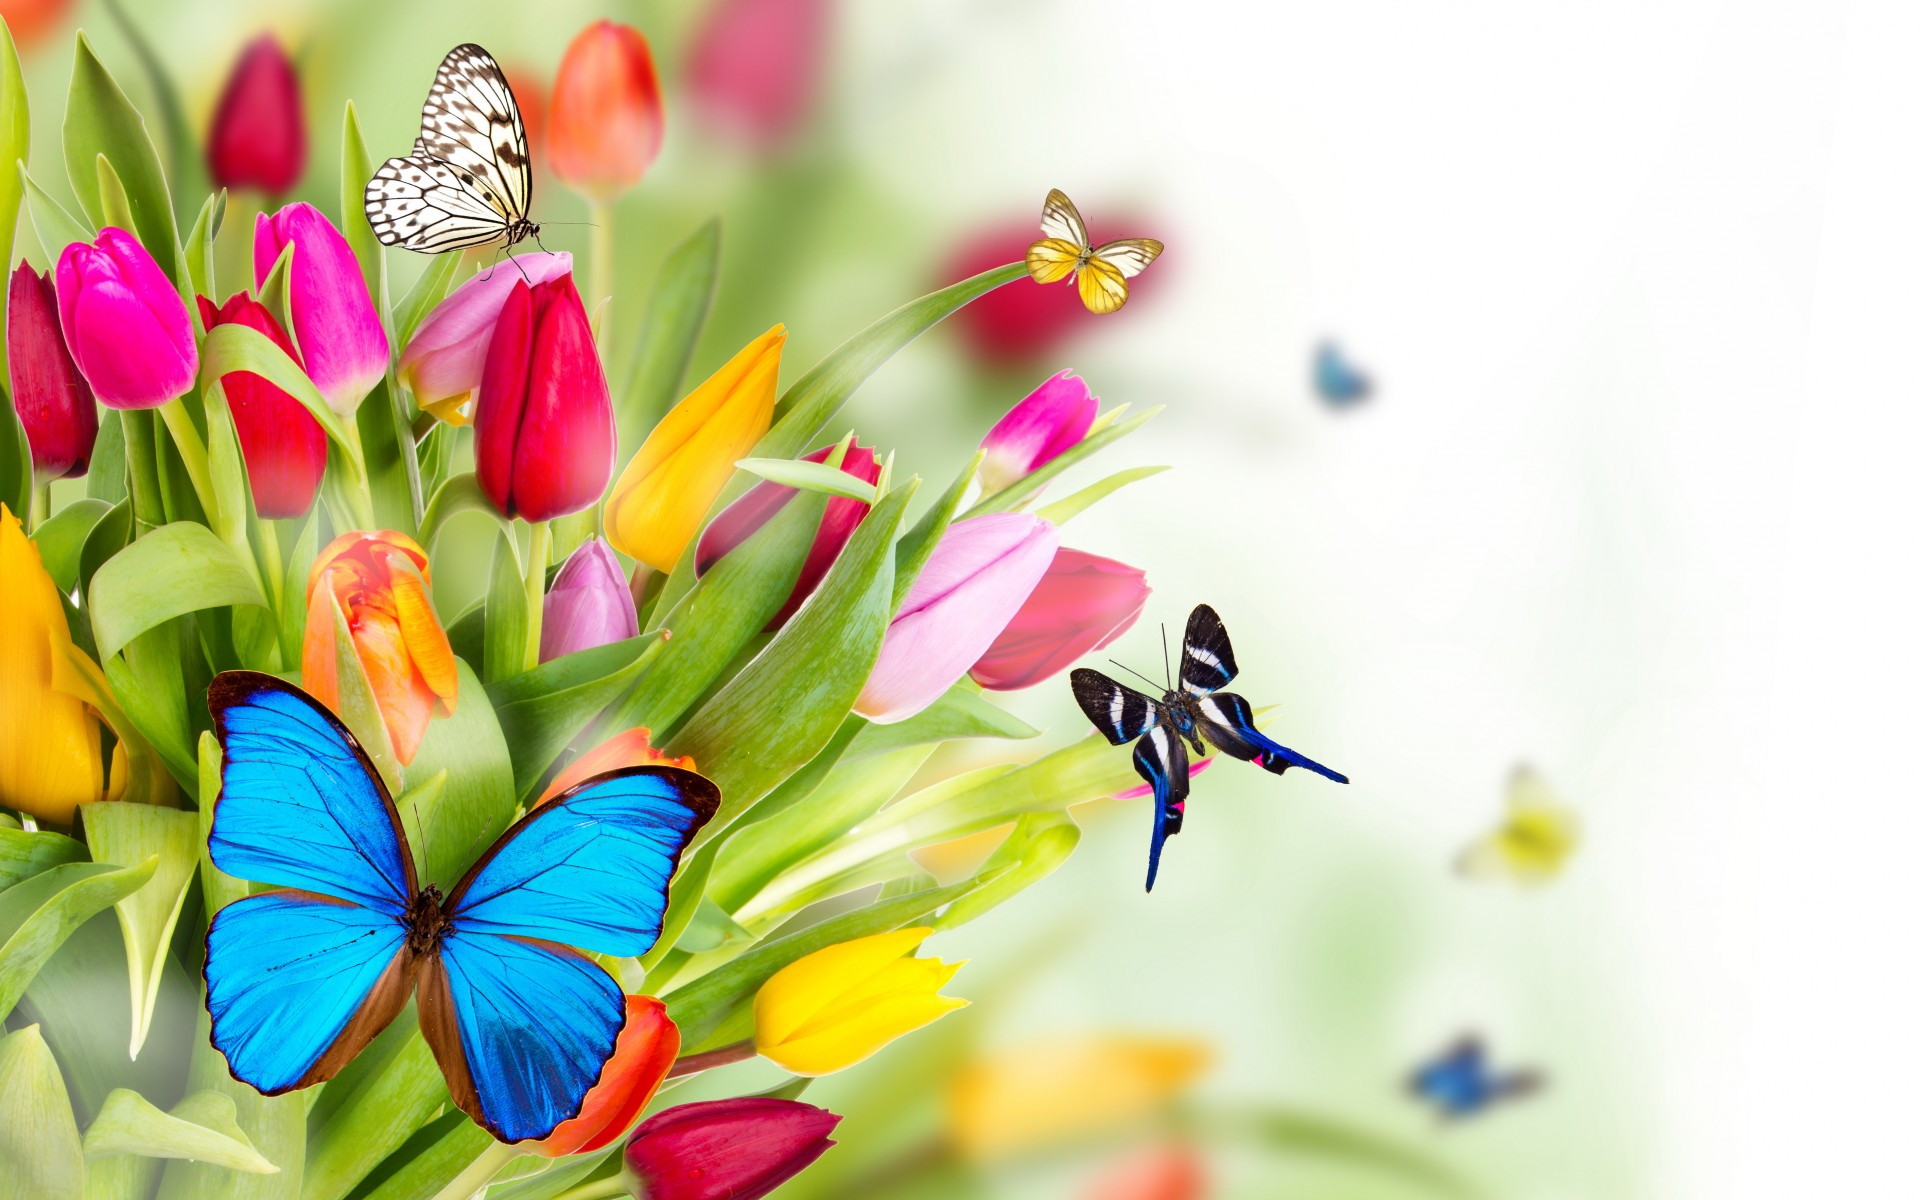 Pictures of spring flowers sf wallpaper pictures of tulips spring flowers clipartfest mightylinksfo